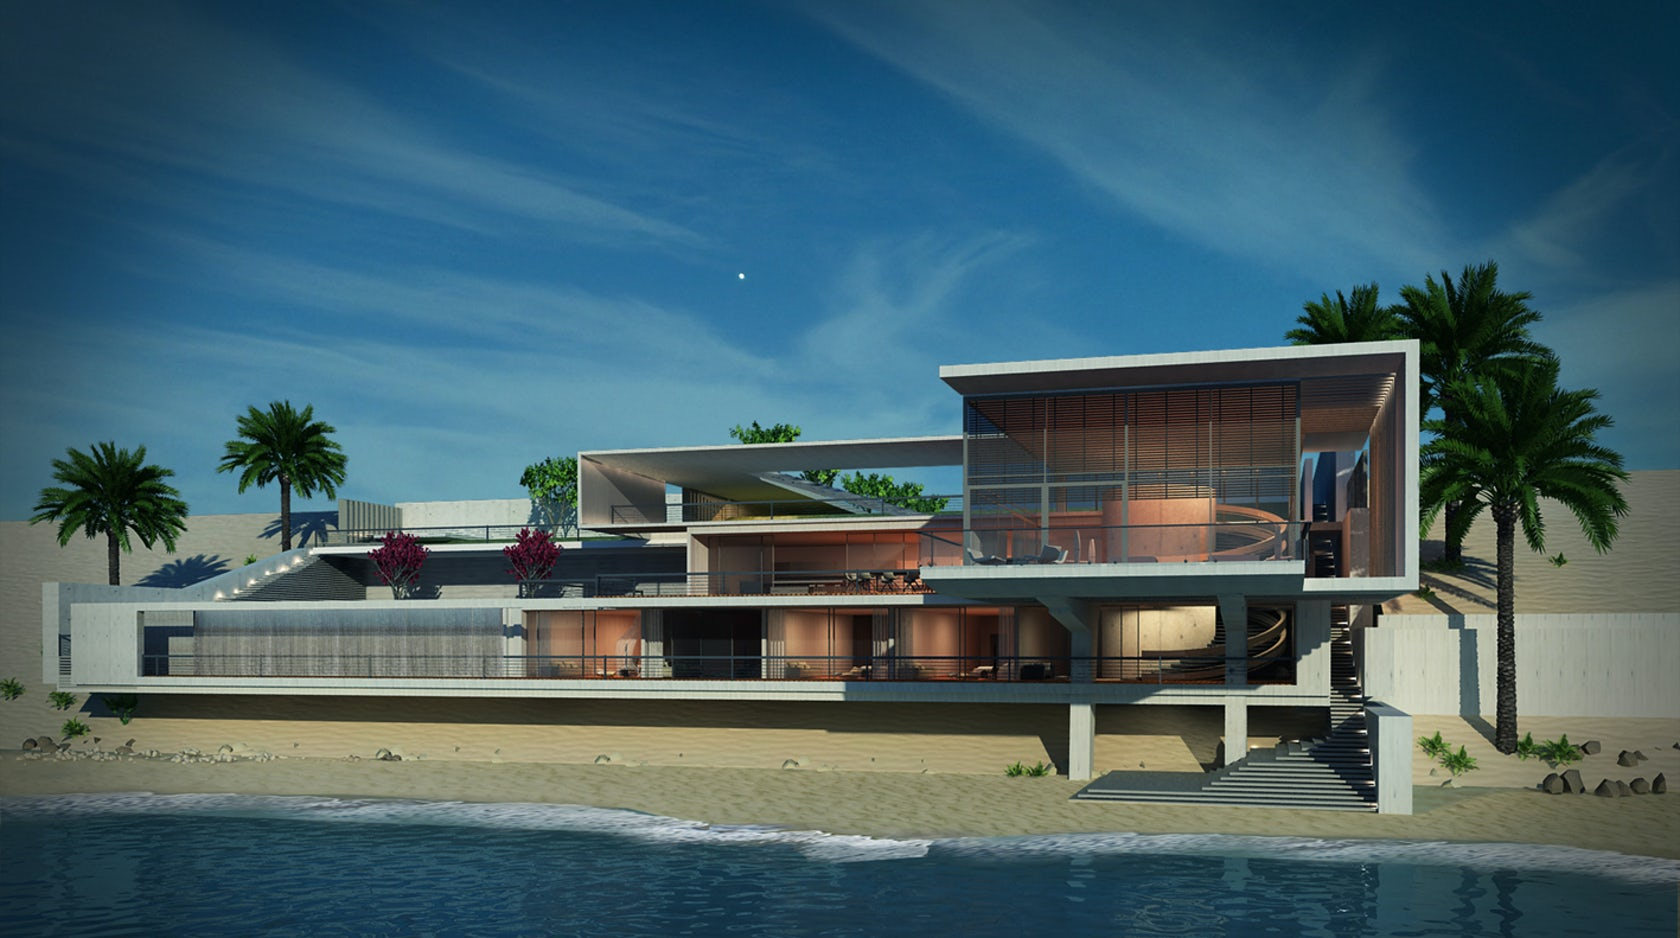 Multi storey beach house in rak uae architizer for Modern house uae